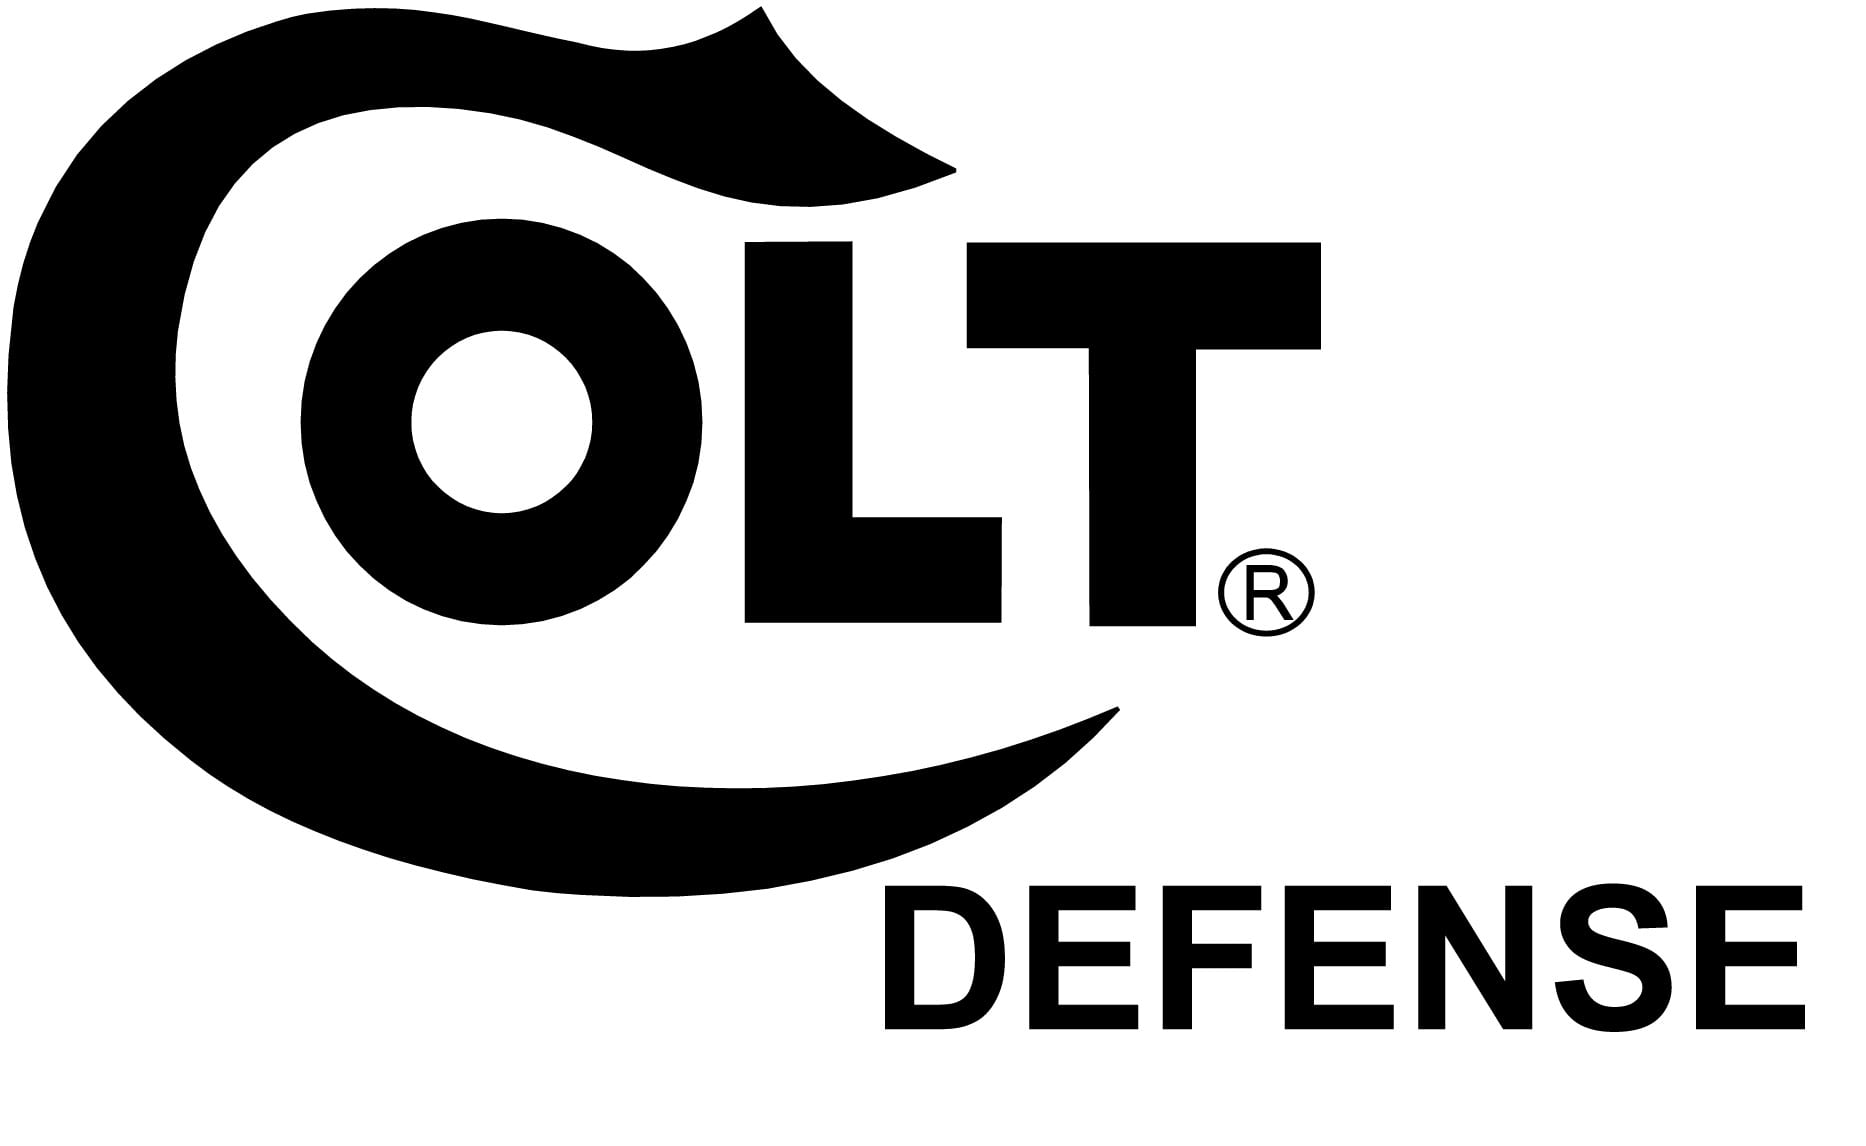 Colt Logo - Bristlecone Shooting Range, Firearms Training & Retail Center Denver, CO